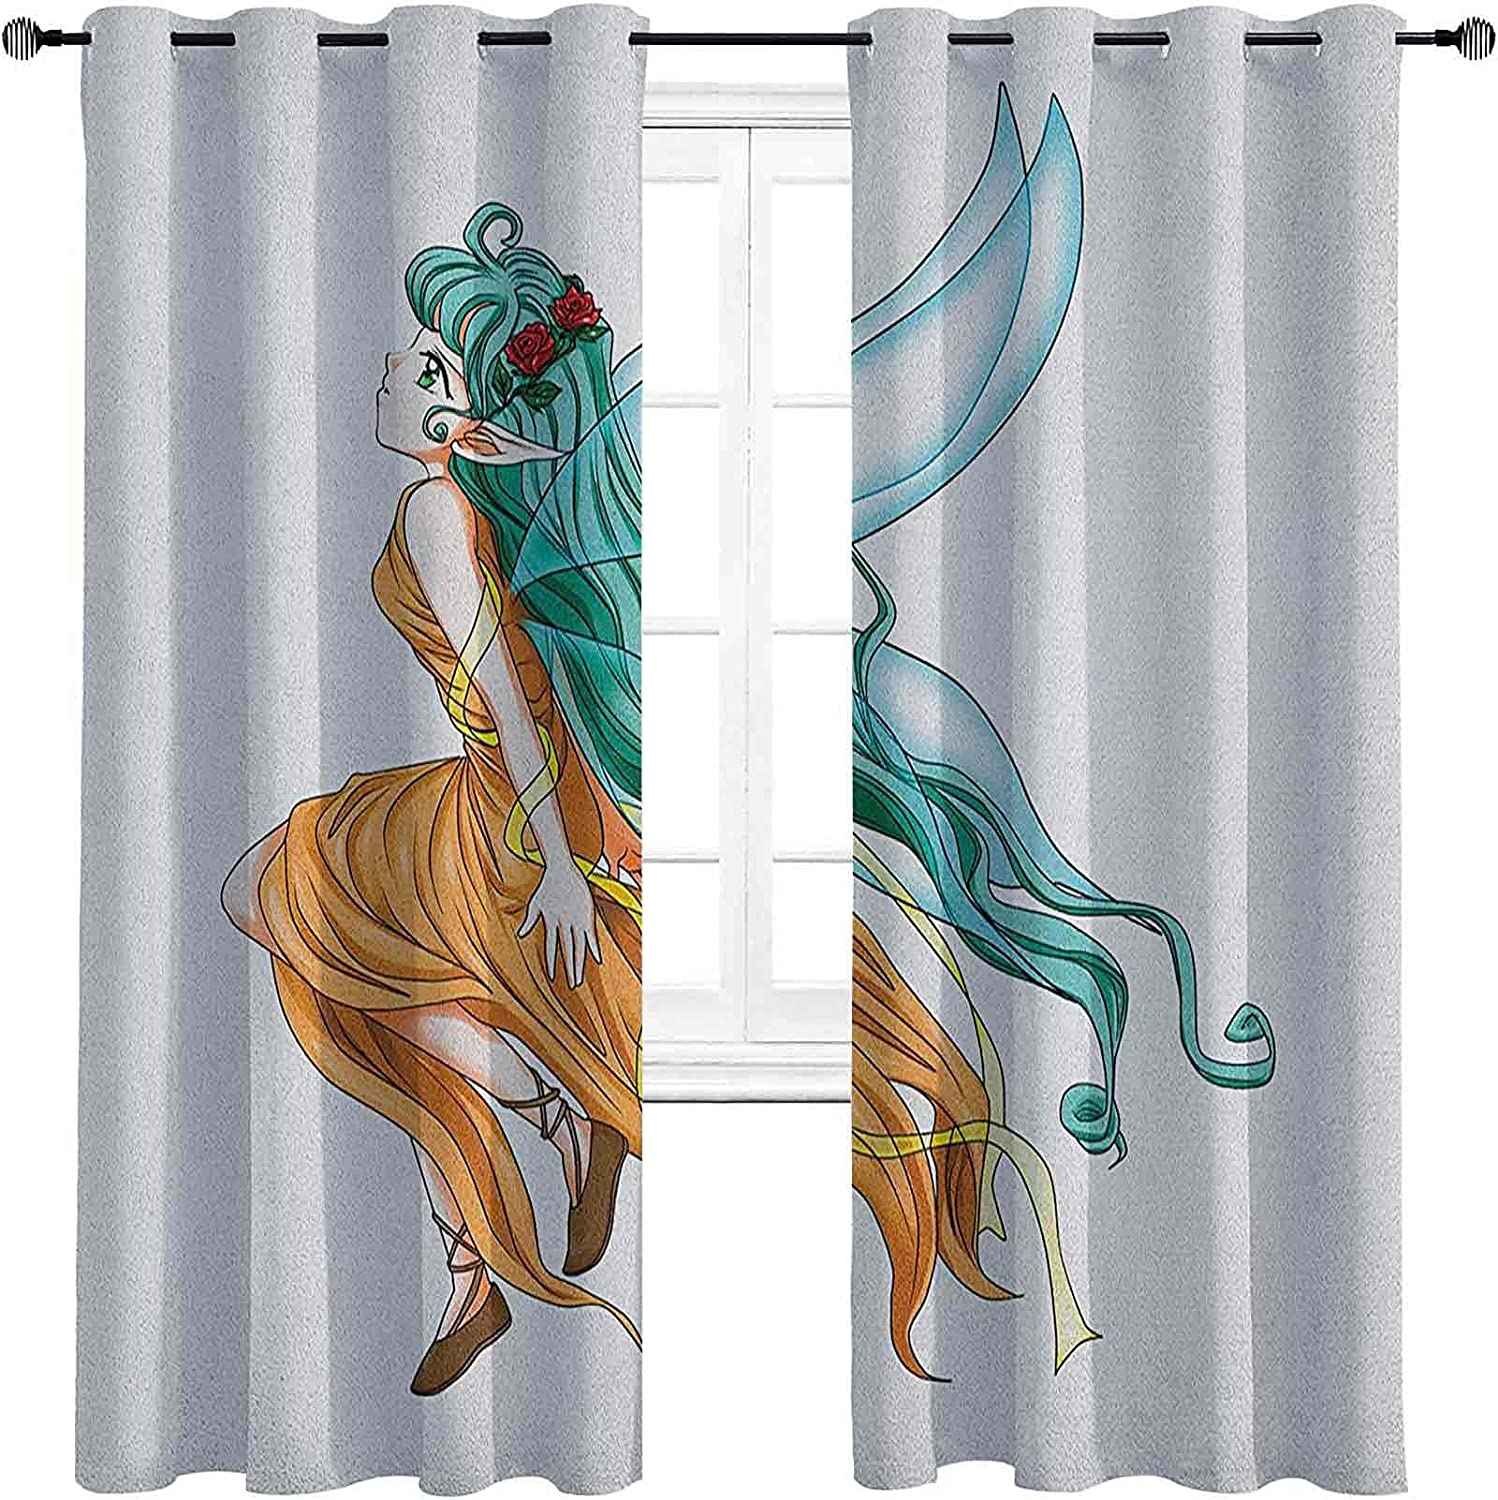 Anime Bedroom Blackout Curtains Pixie Girl Caricature 5 popular with Price reduction Lo a